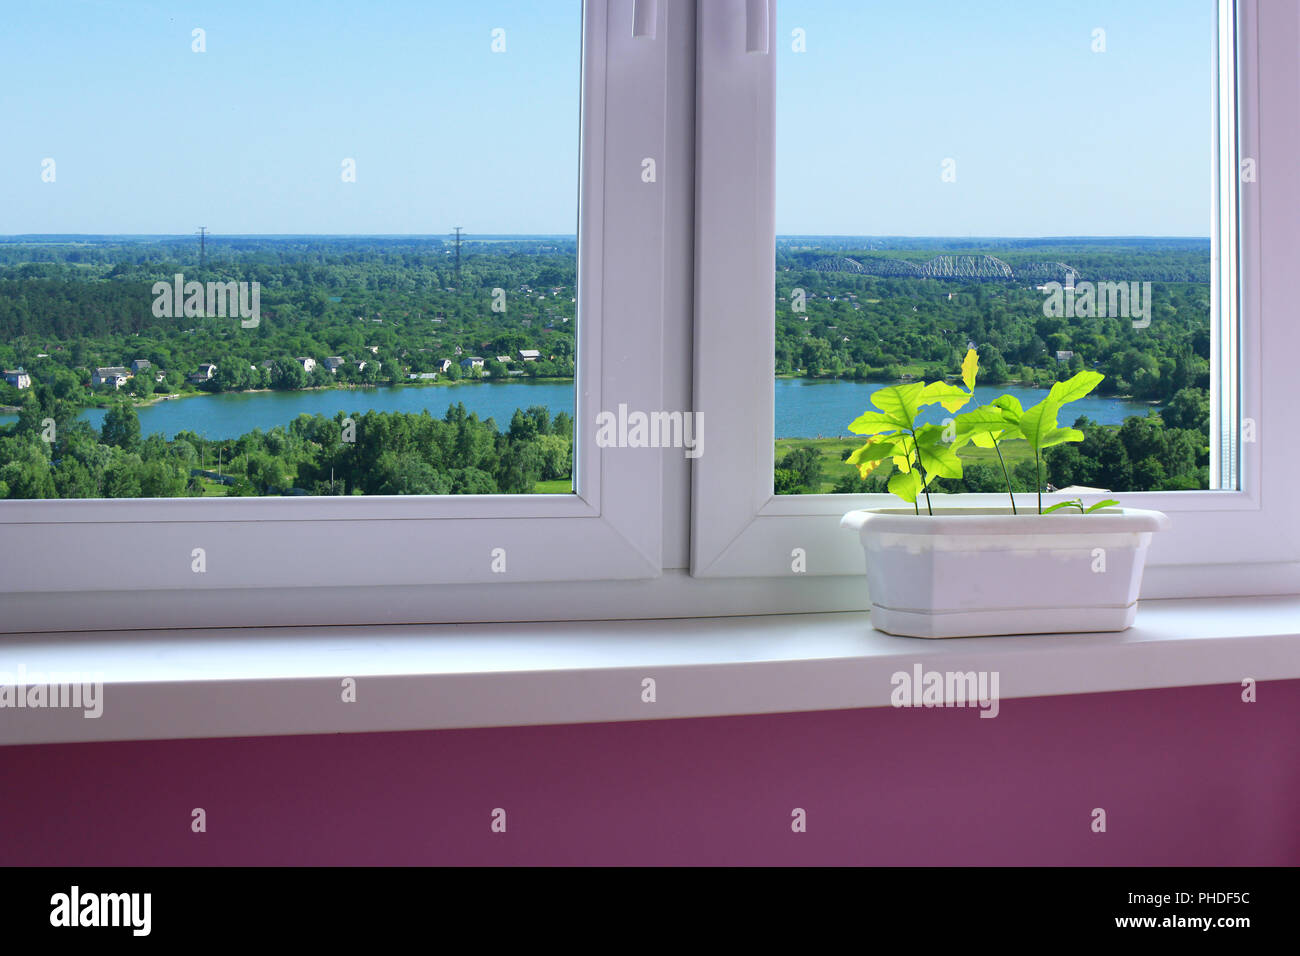 flower-pot on the window-sill and view to the country houses - Stock Image